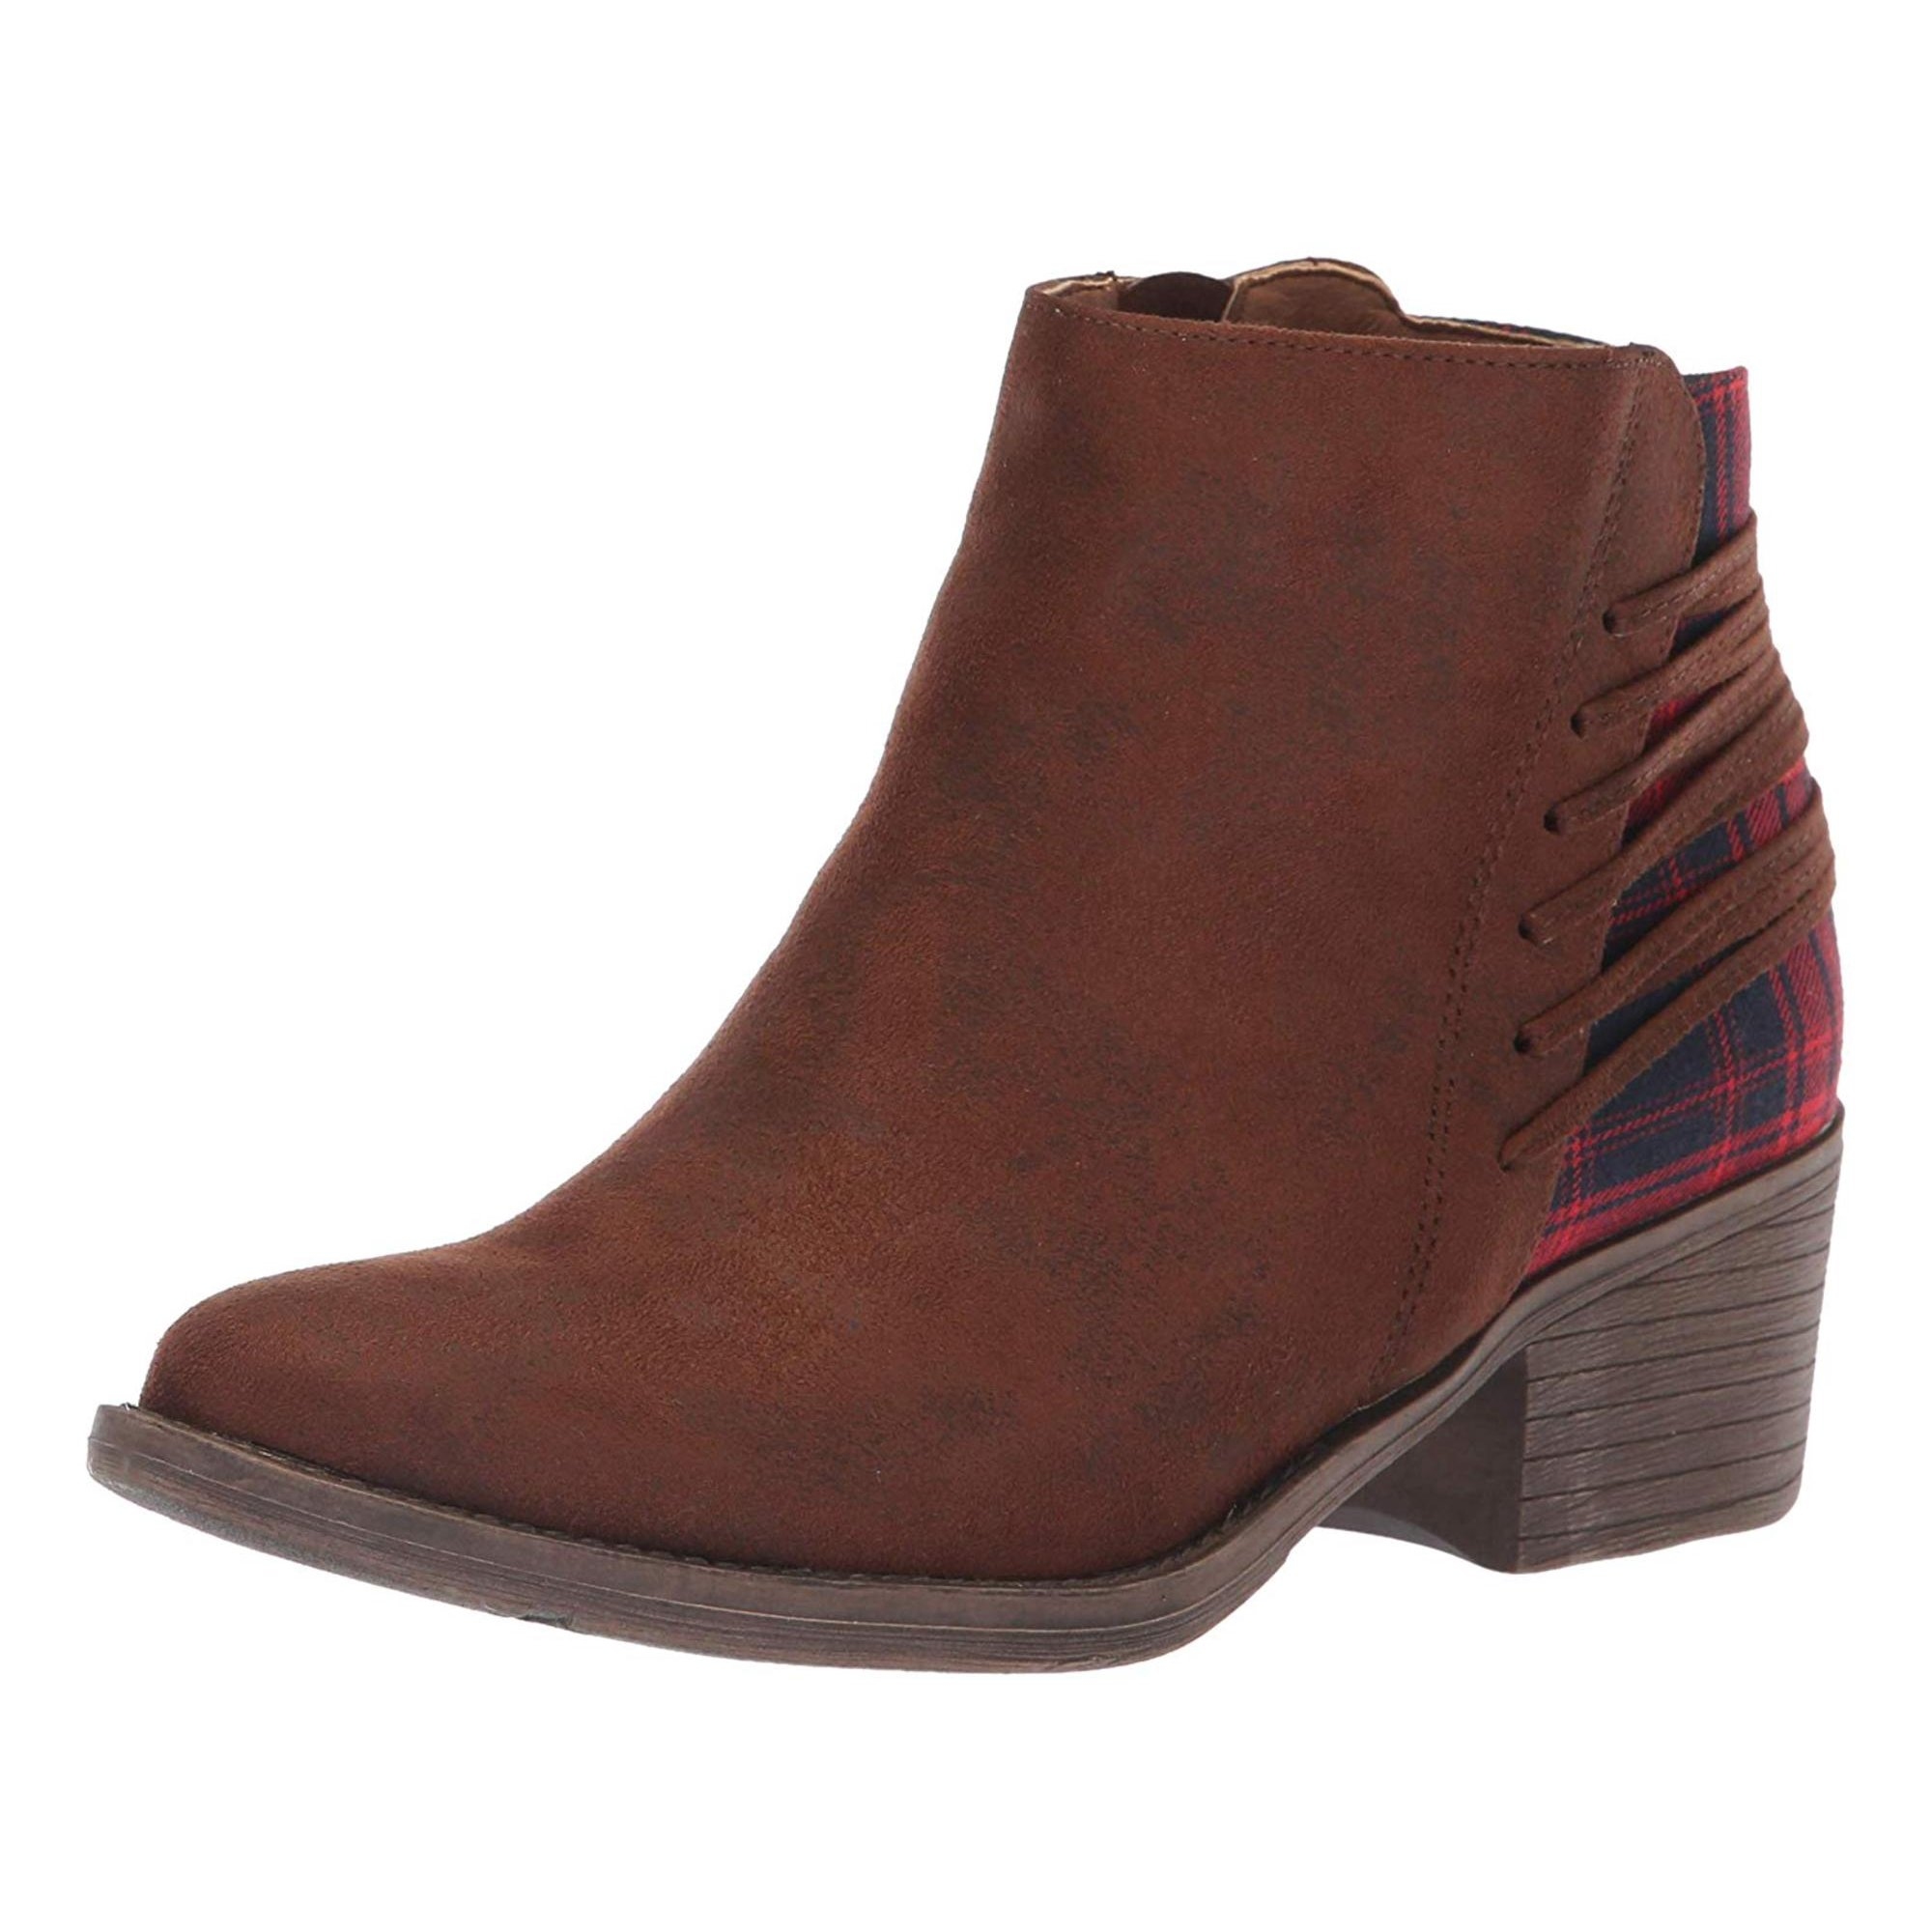 4bd125fafbe Volatile Womens Accolade Almond Toe Ankle Cowboy Boots